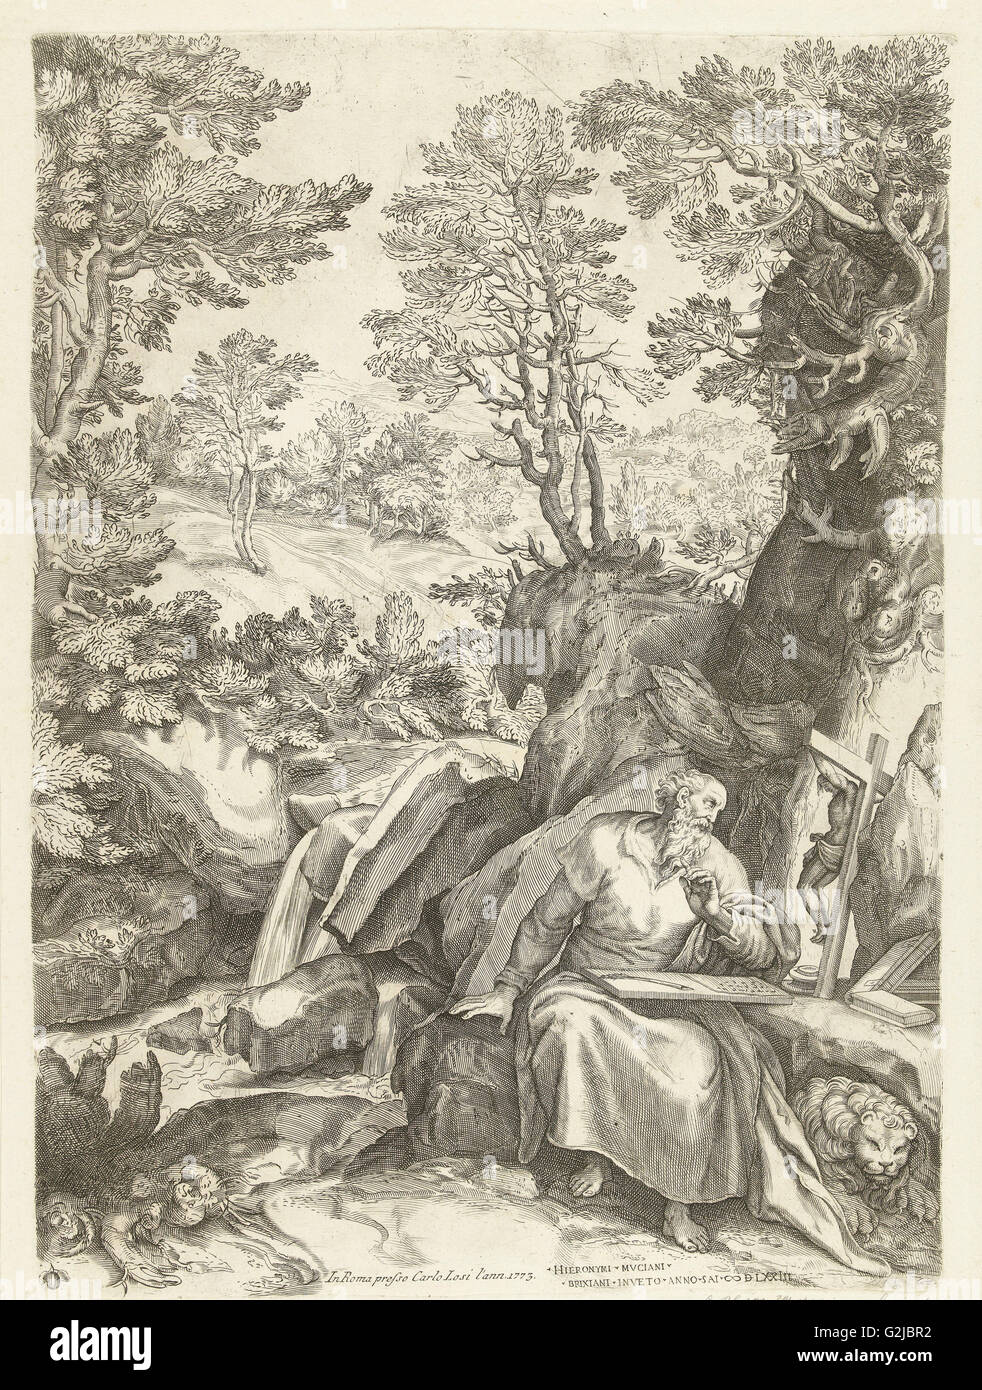 Landscape with St. Jerome who translates the Bible, Cornelis Cort, Carlo Losi, 1573 - Stock Image